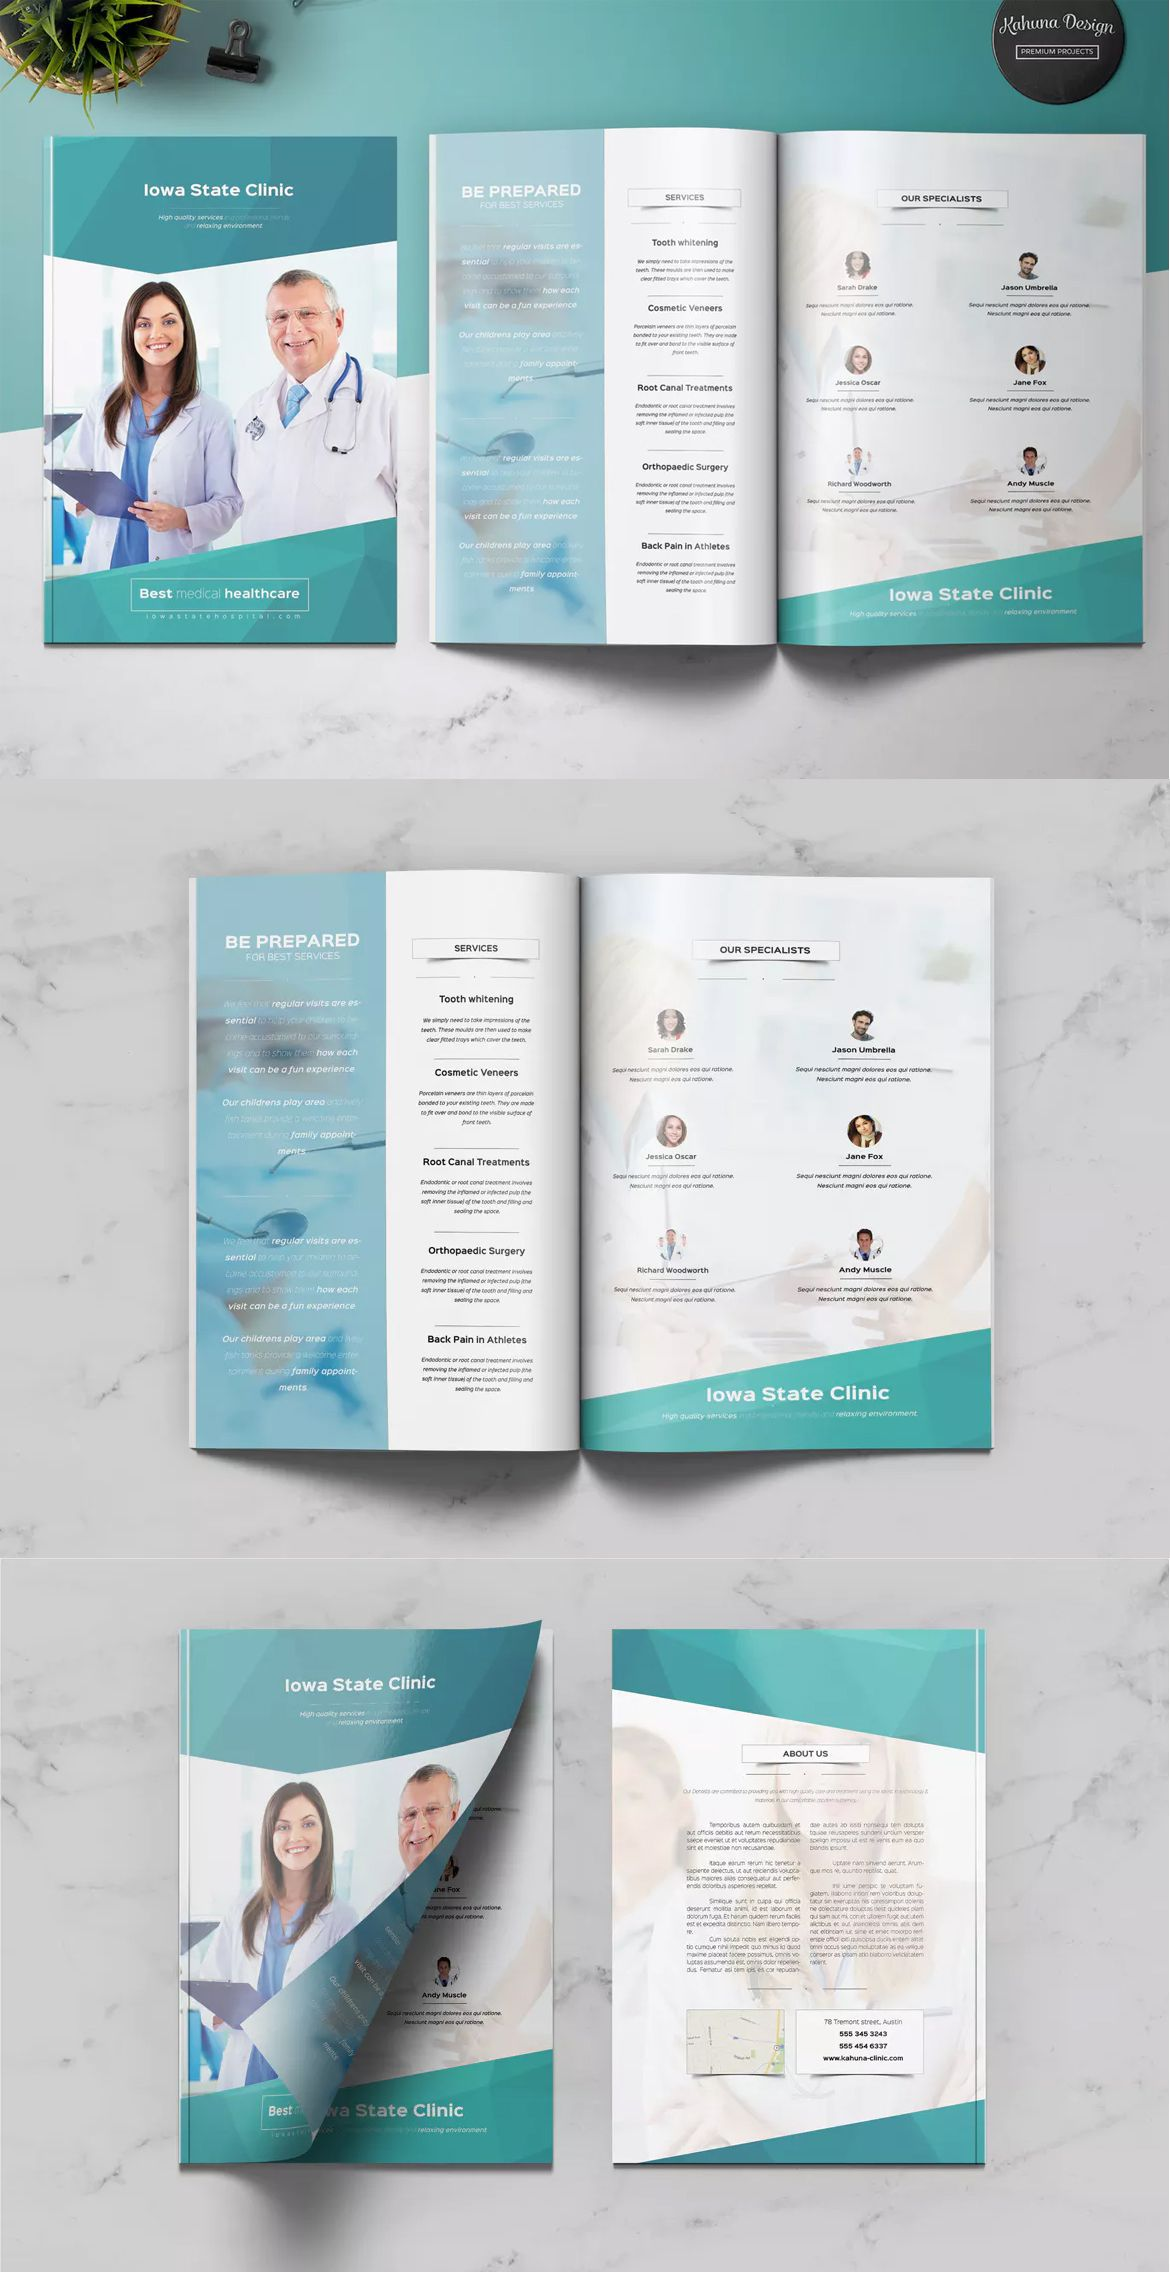 005 Archaicawful Indesign A4 Brochure Template Free Download High Definition Full